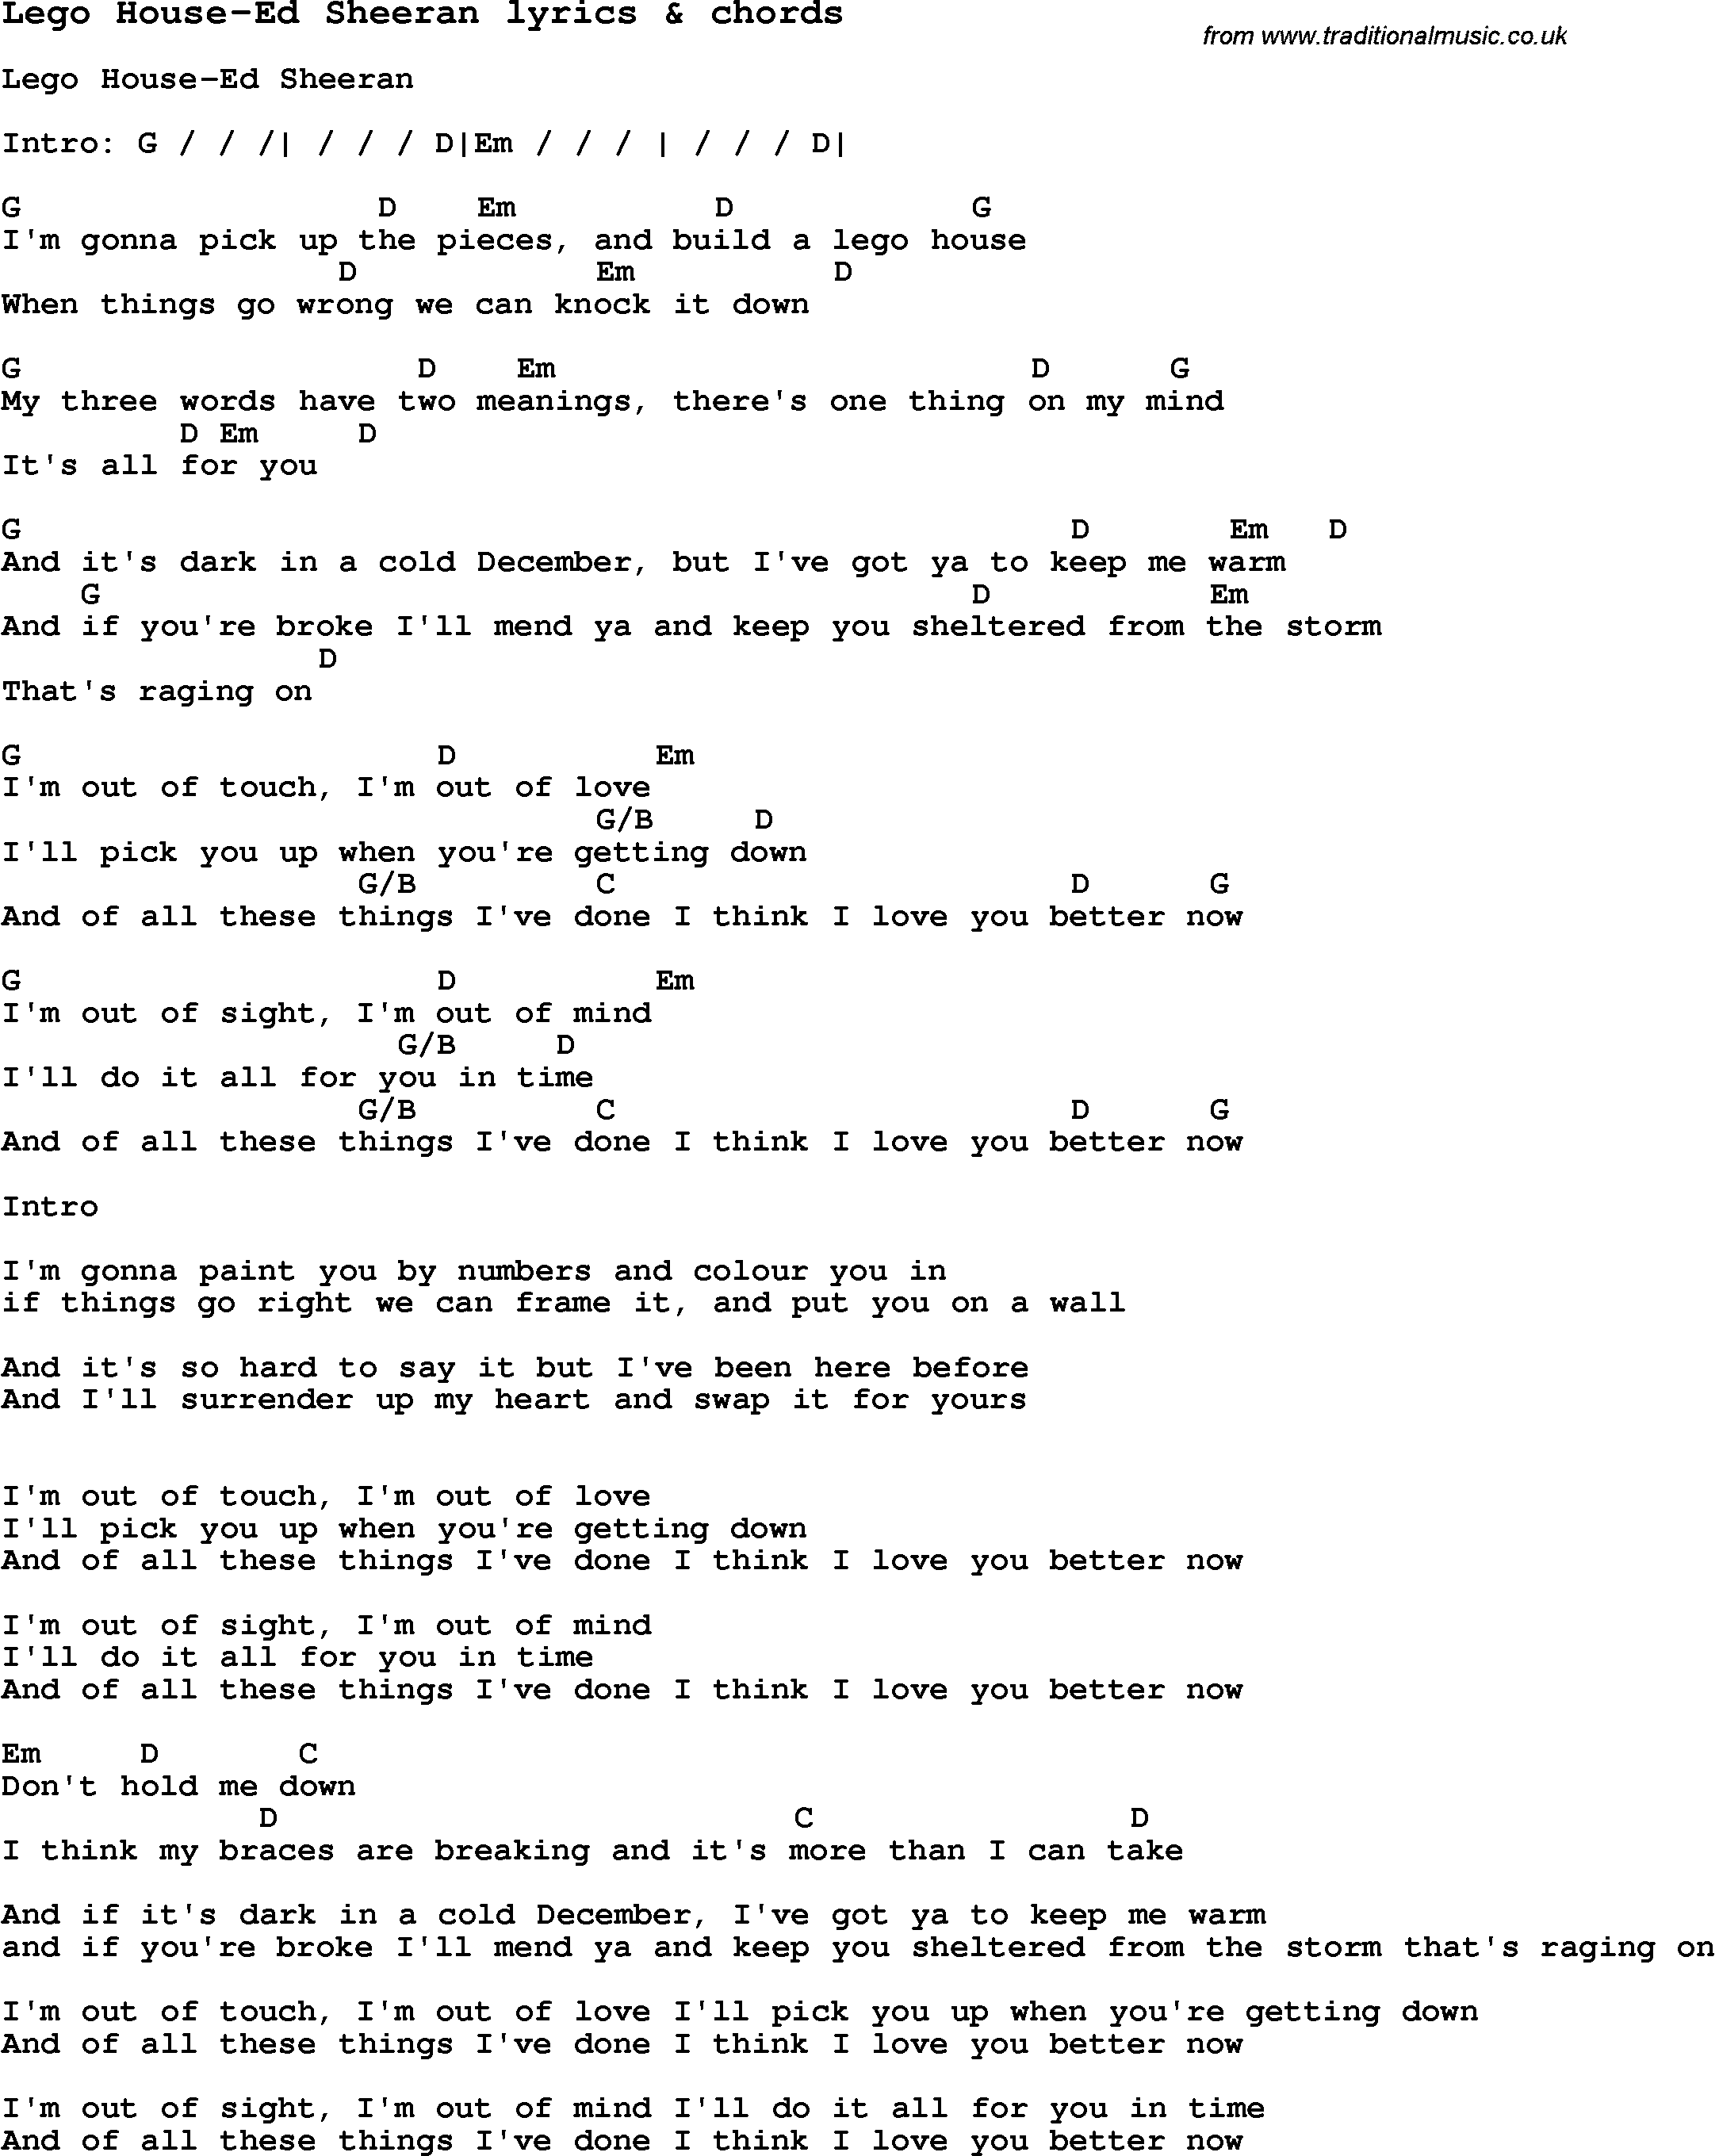 Love Song Lyrics for Lego House Ed Sheeran with chords for Ukulele Guitar